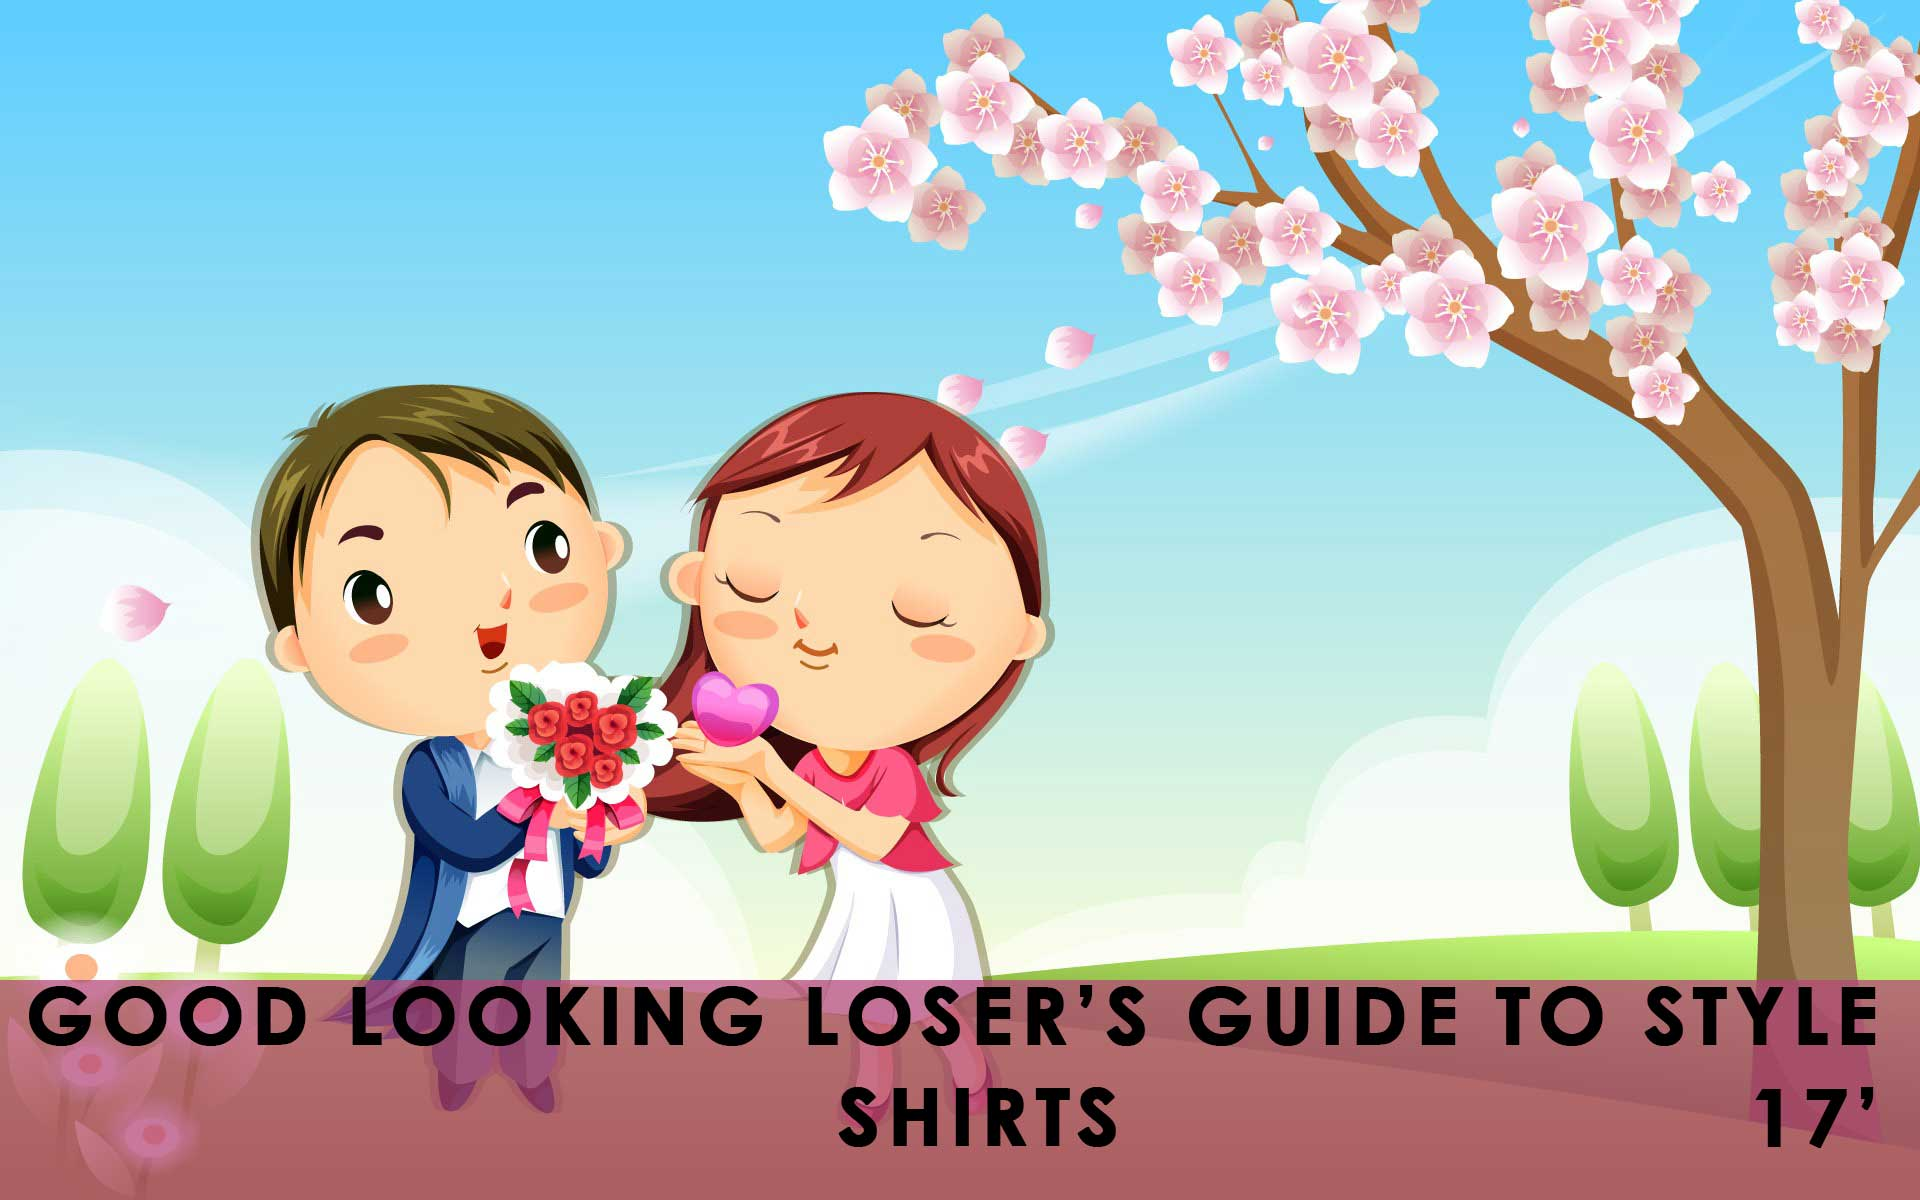 Good Looking Loser's Spring 2017 Guide to Style (Shirts)